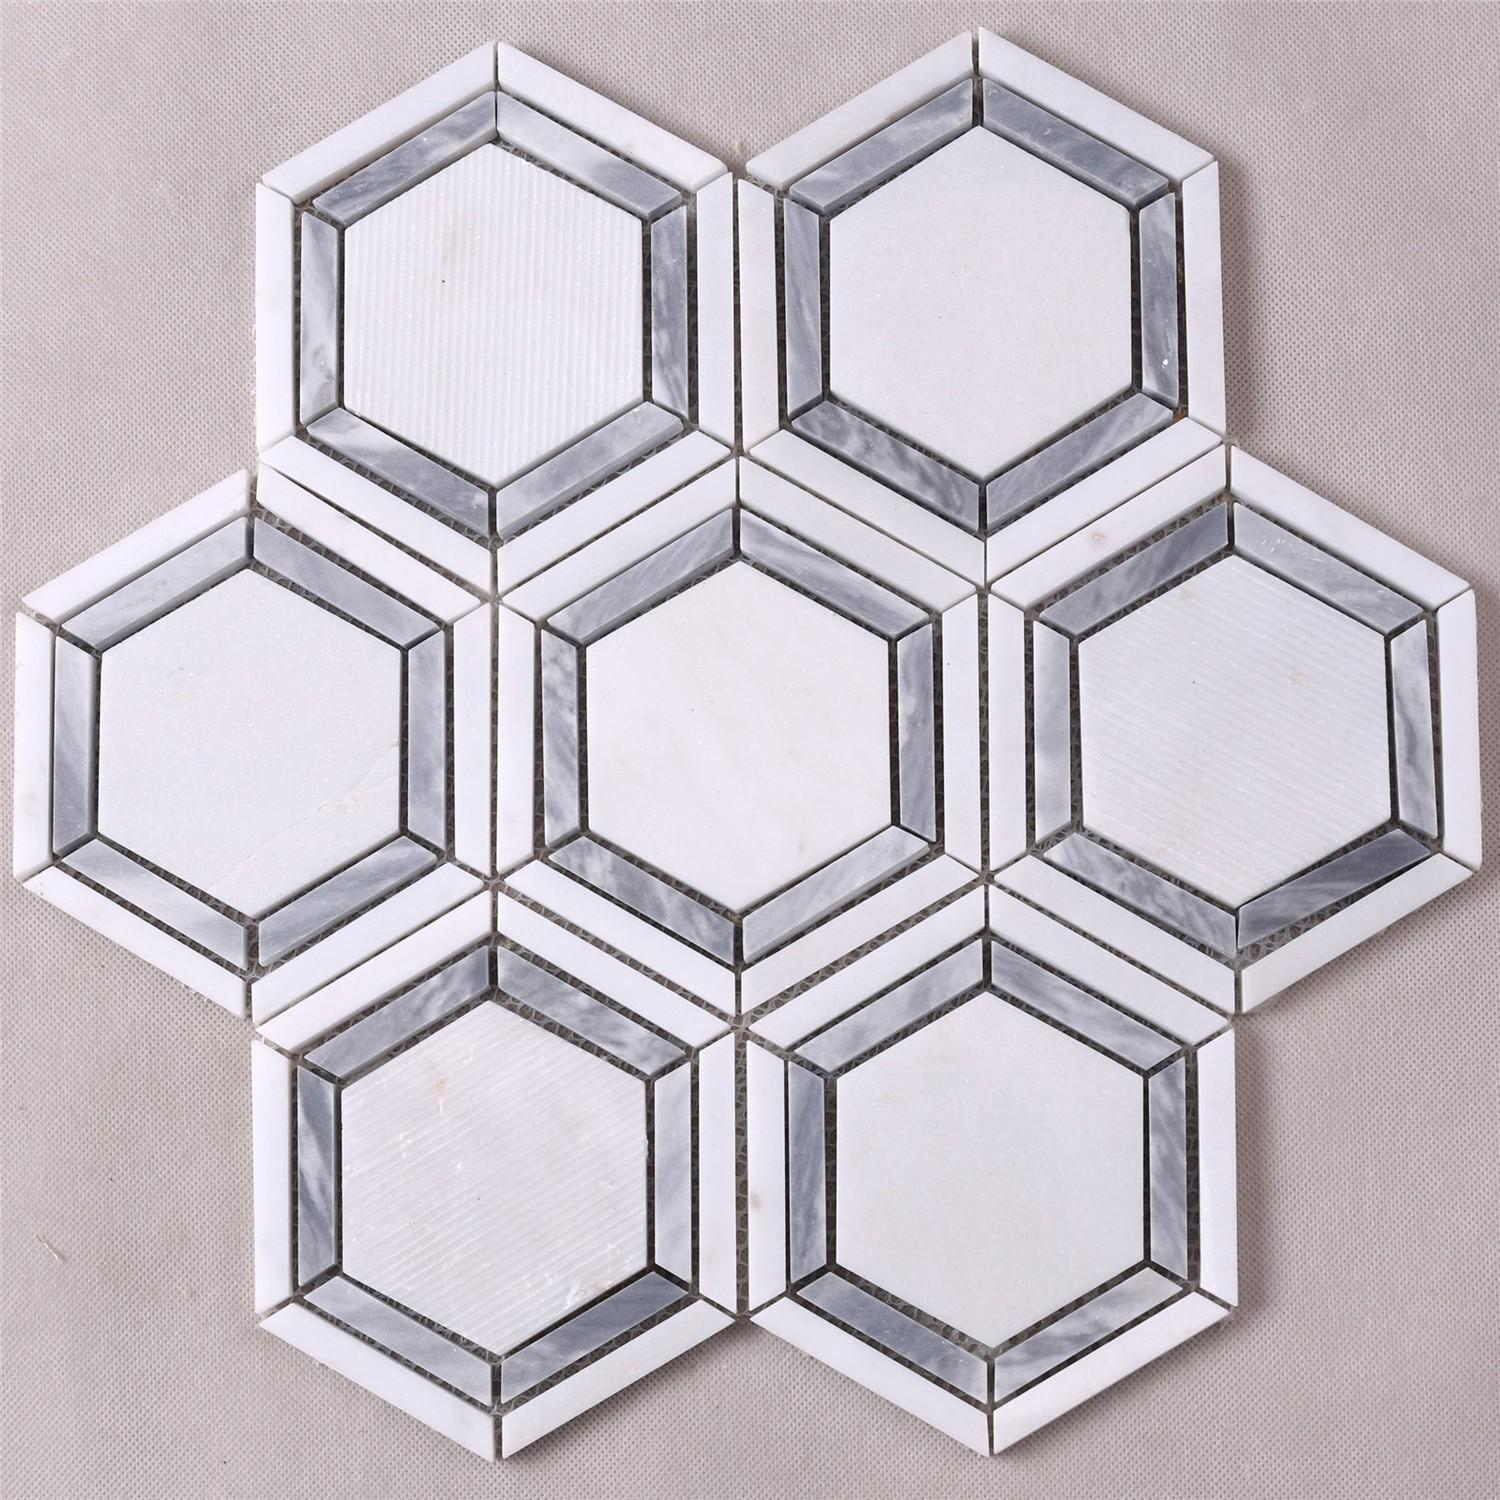 3x3 tile colors flower company for backsplash-1